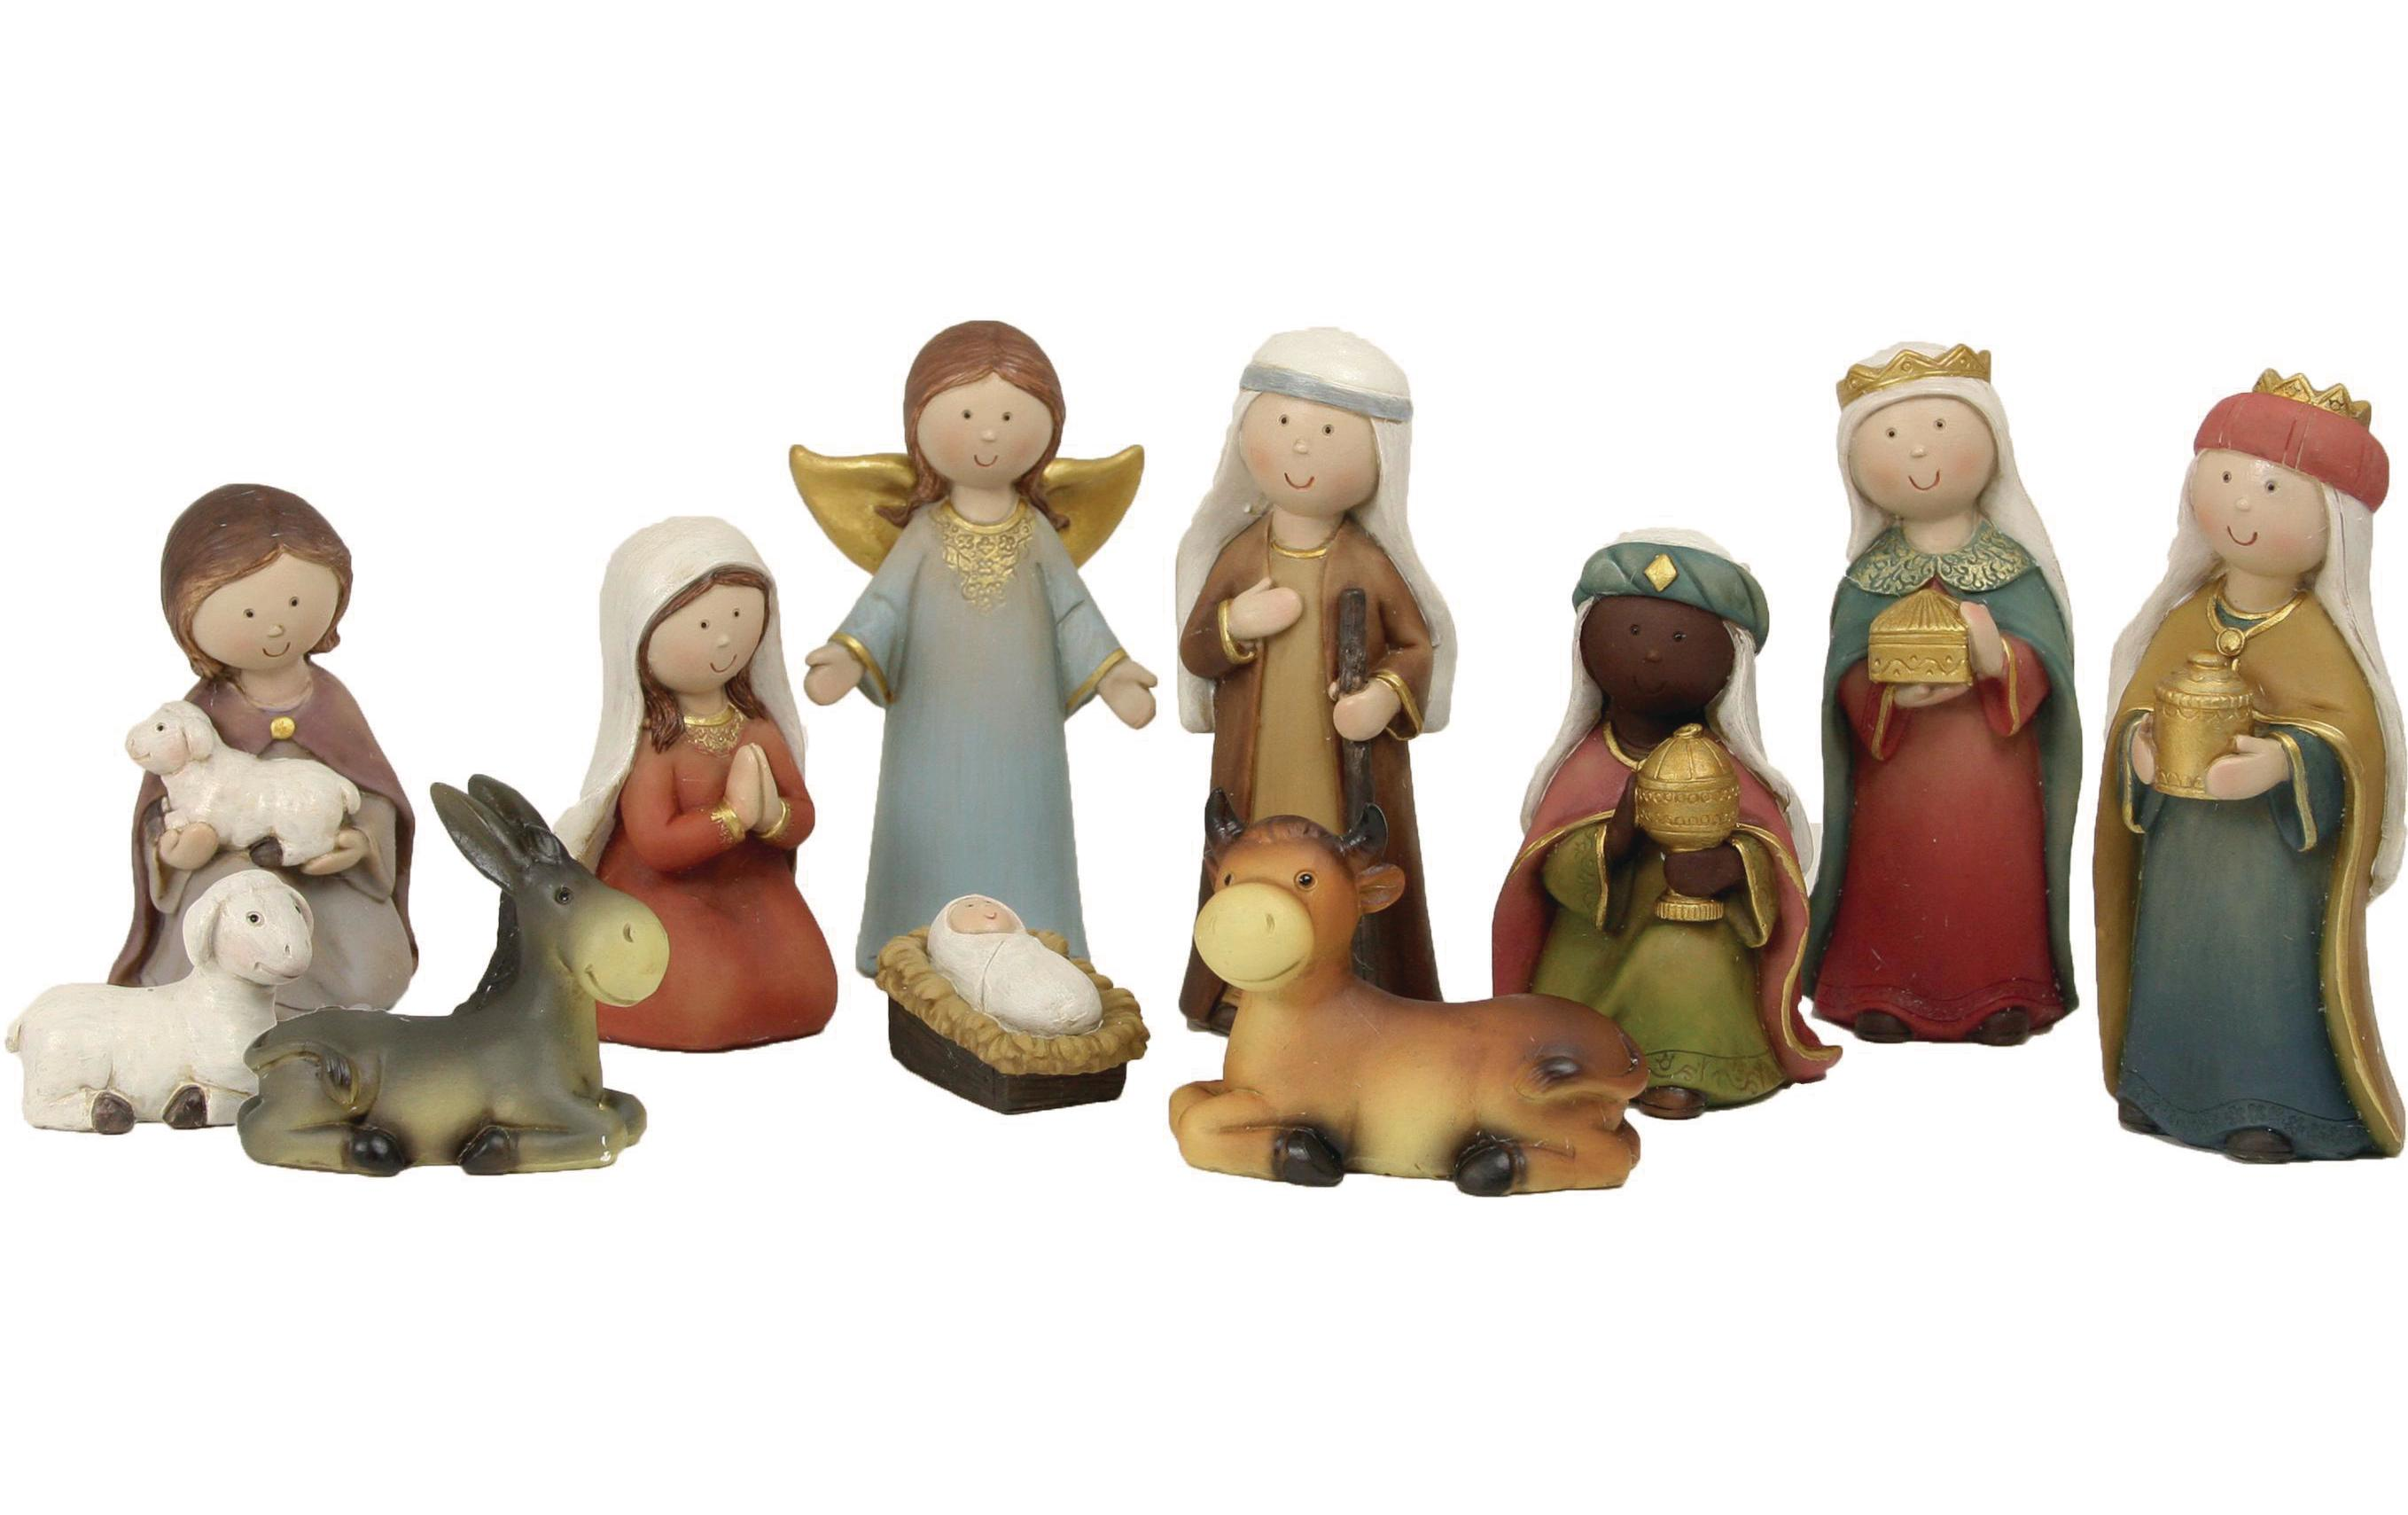 NATIVITY SET FOR KIDS. DEK097702